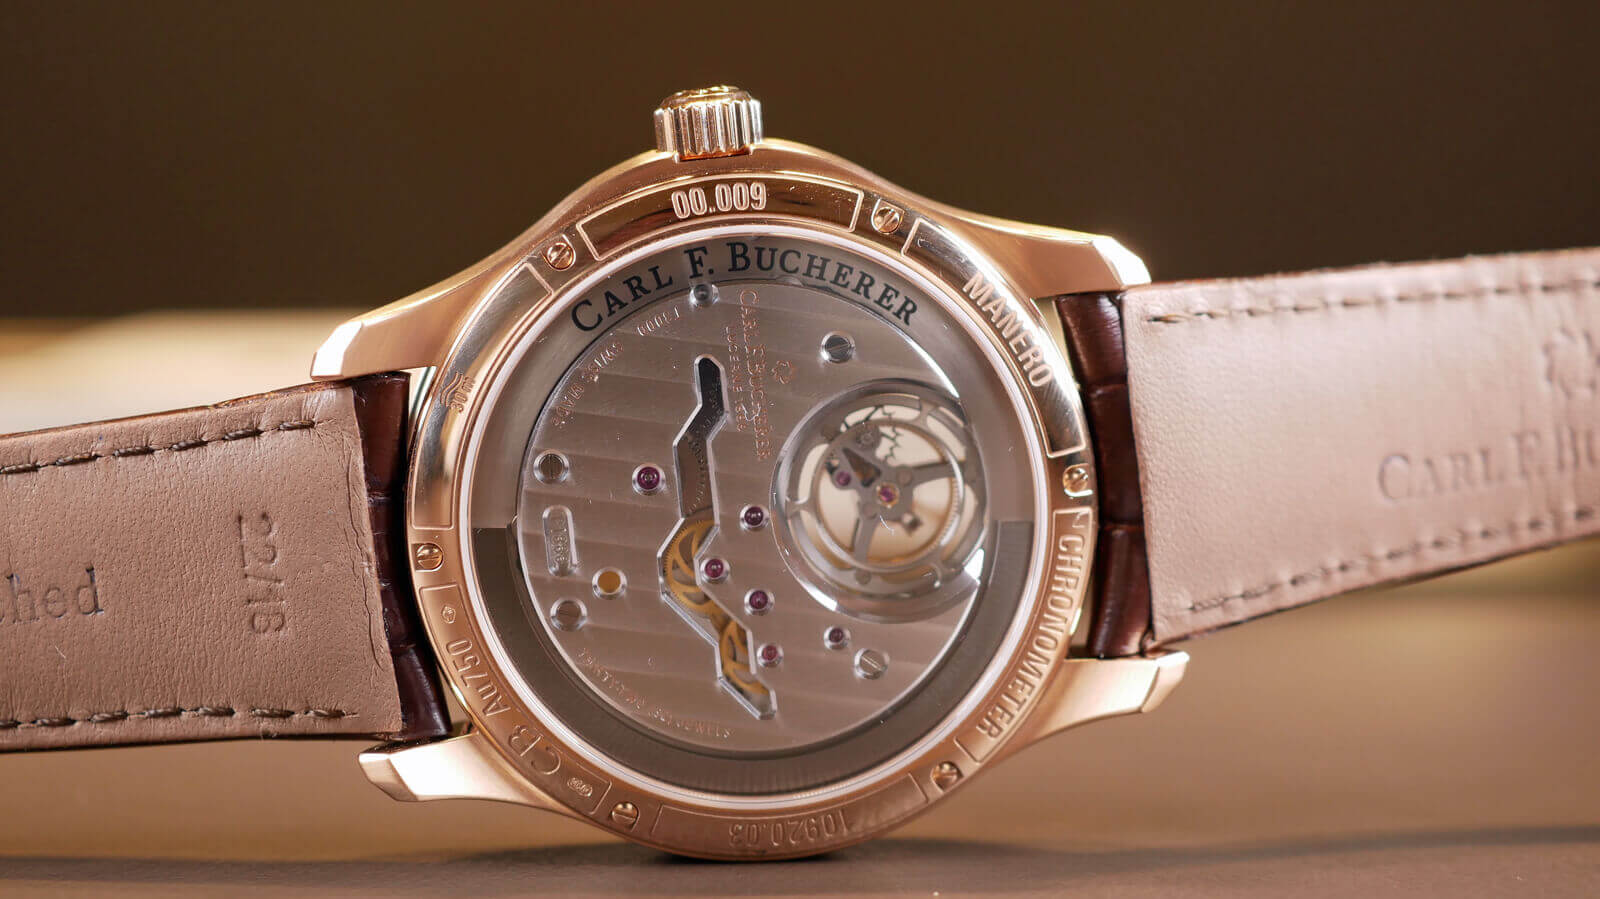 Carl F. Bucherer Manero Tourbillon Double Peripheral - chronometer (COSC) with floating tourbillon and stop-seconds function